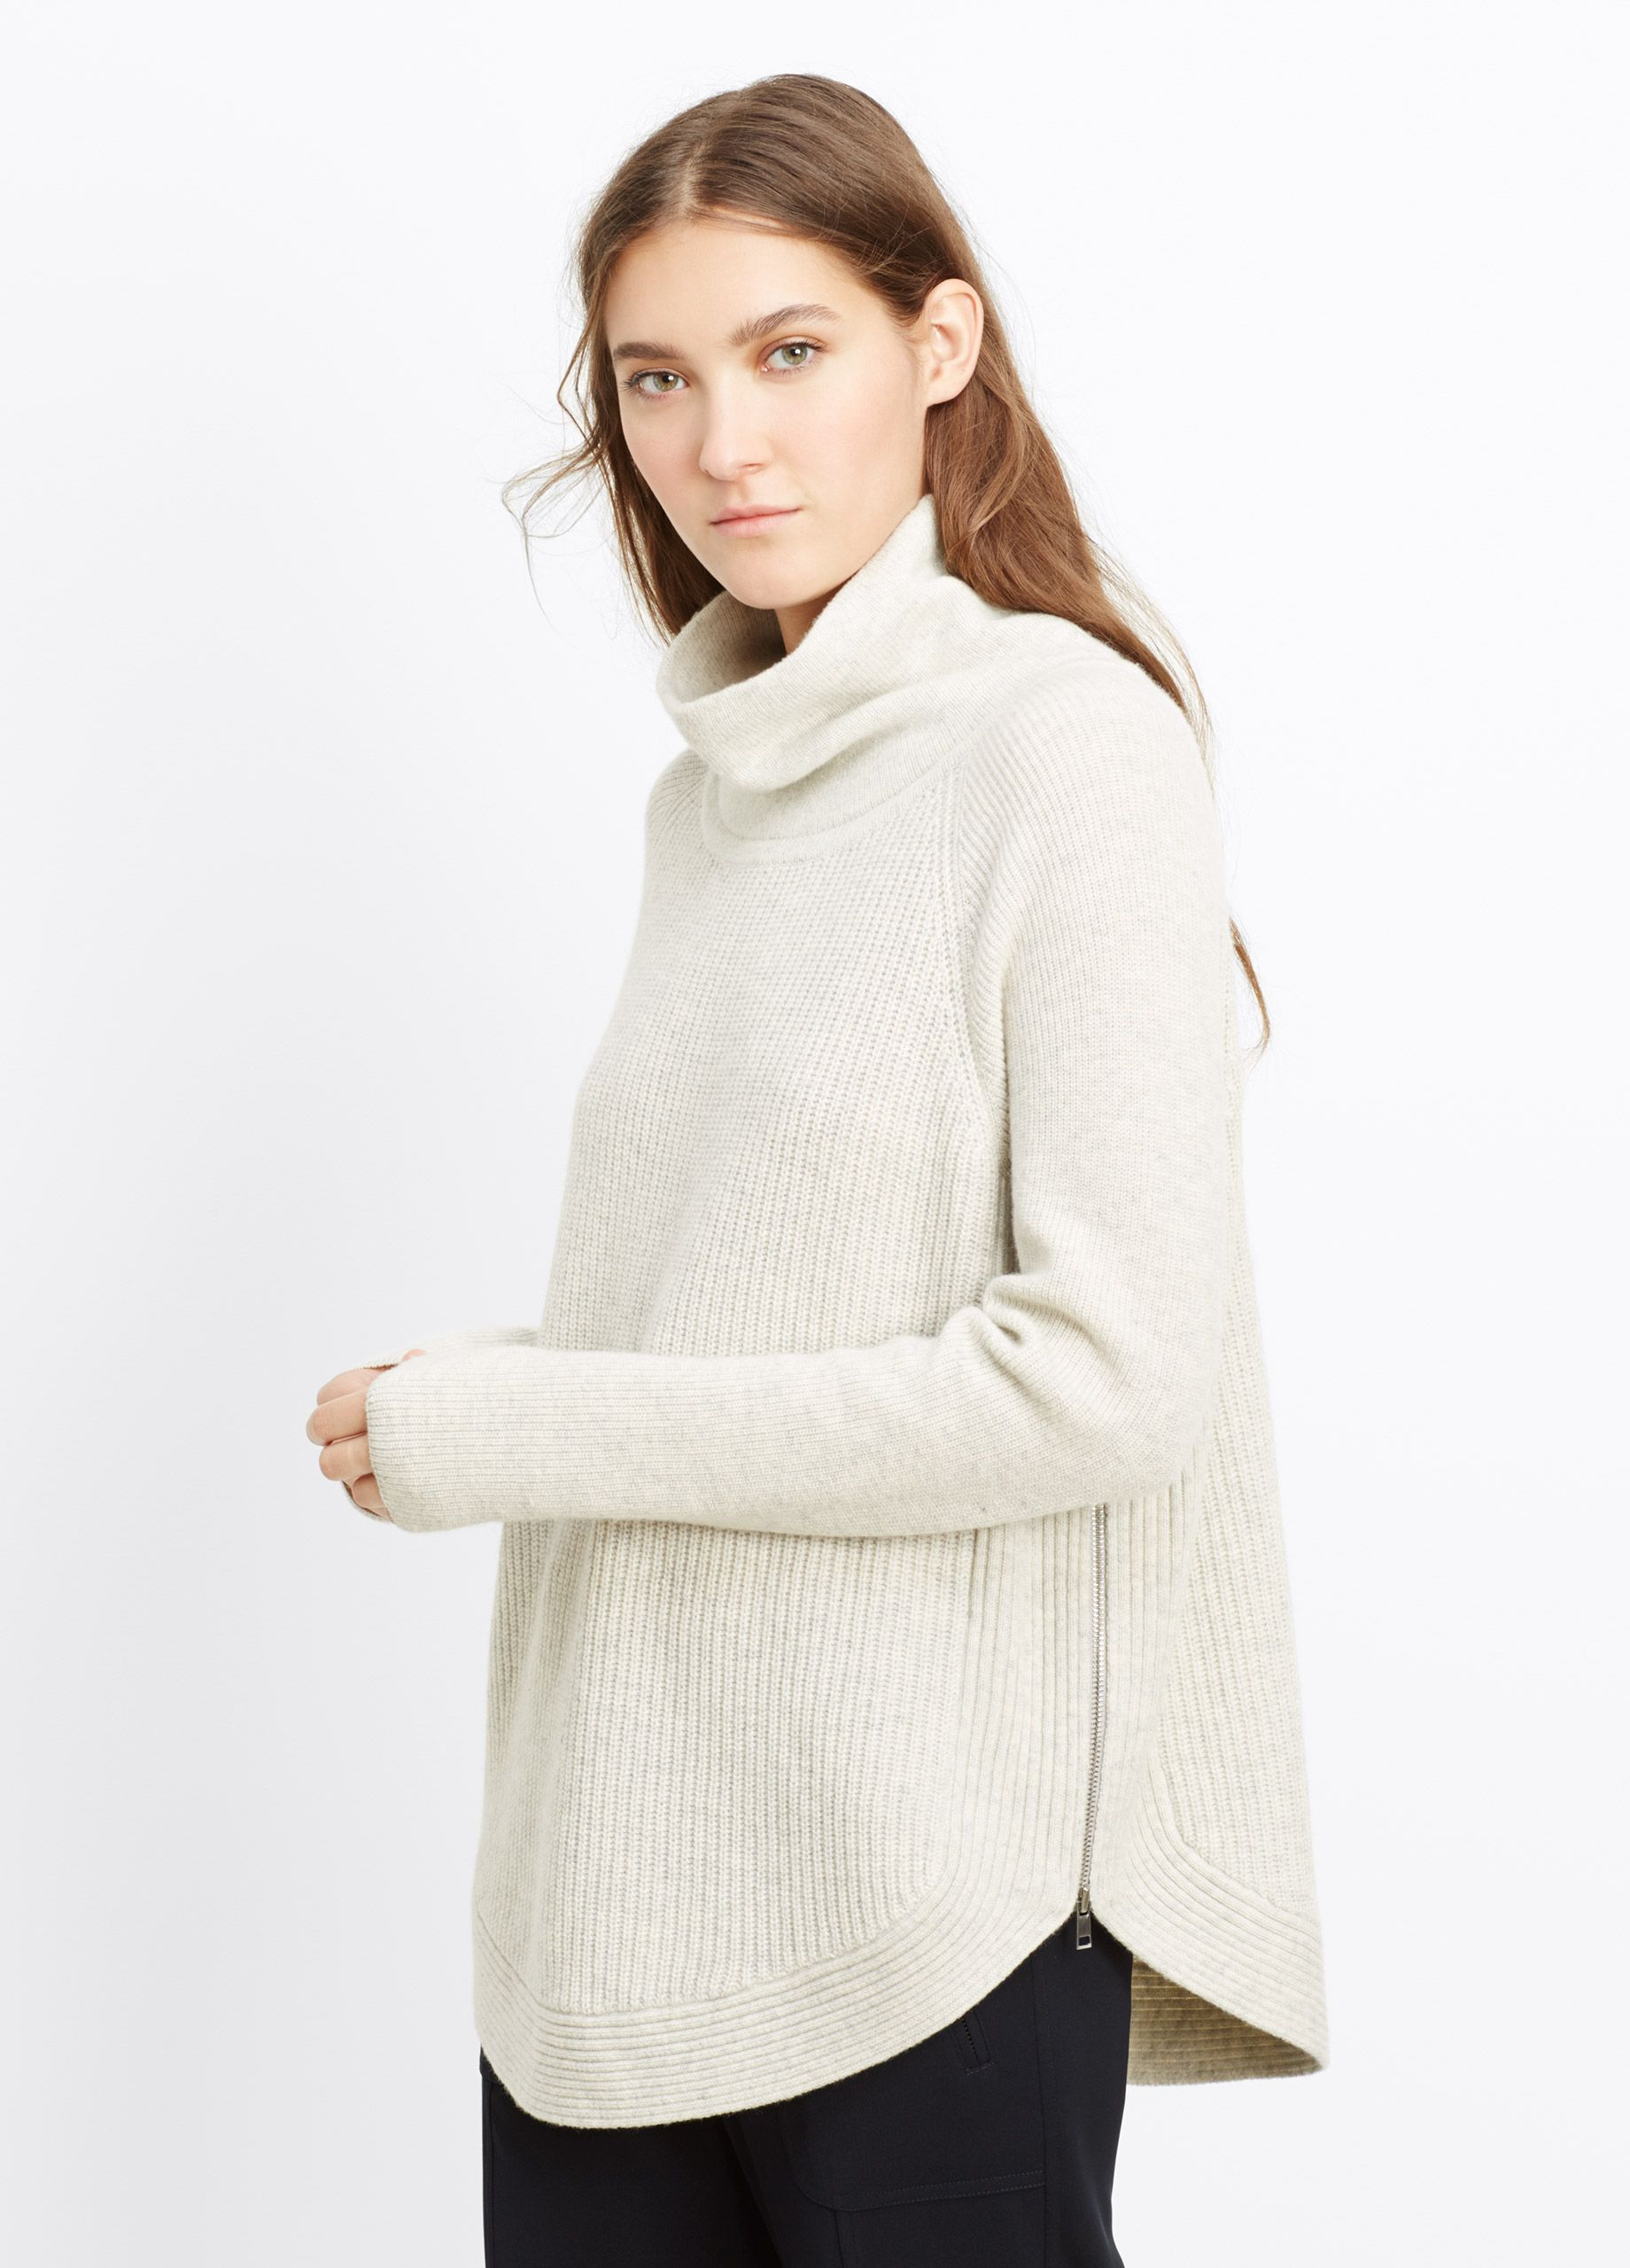 Ribbed Turtleneck Sweater with Side Zippers | Vince | my style ...